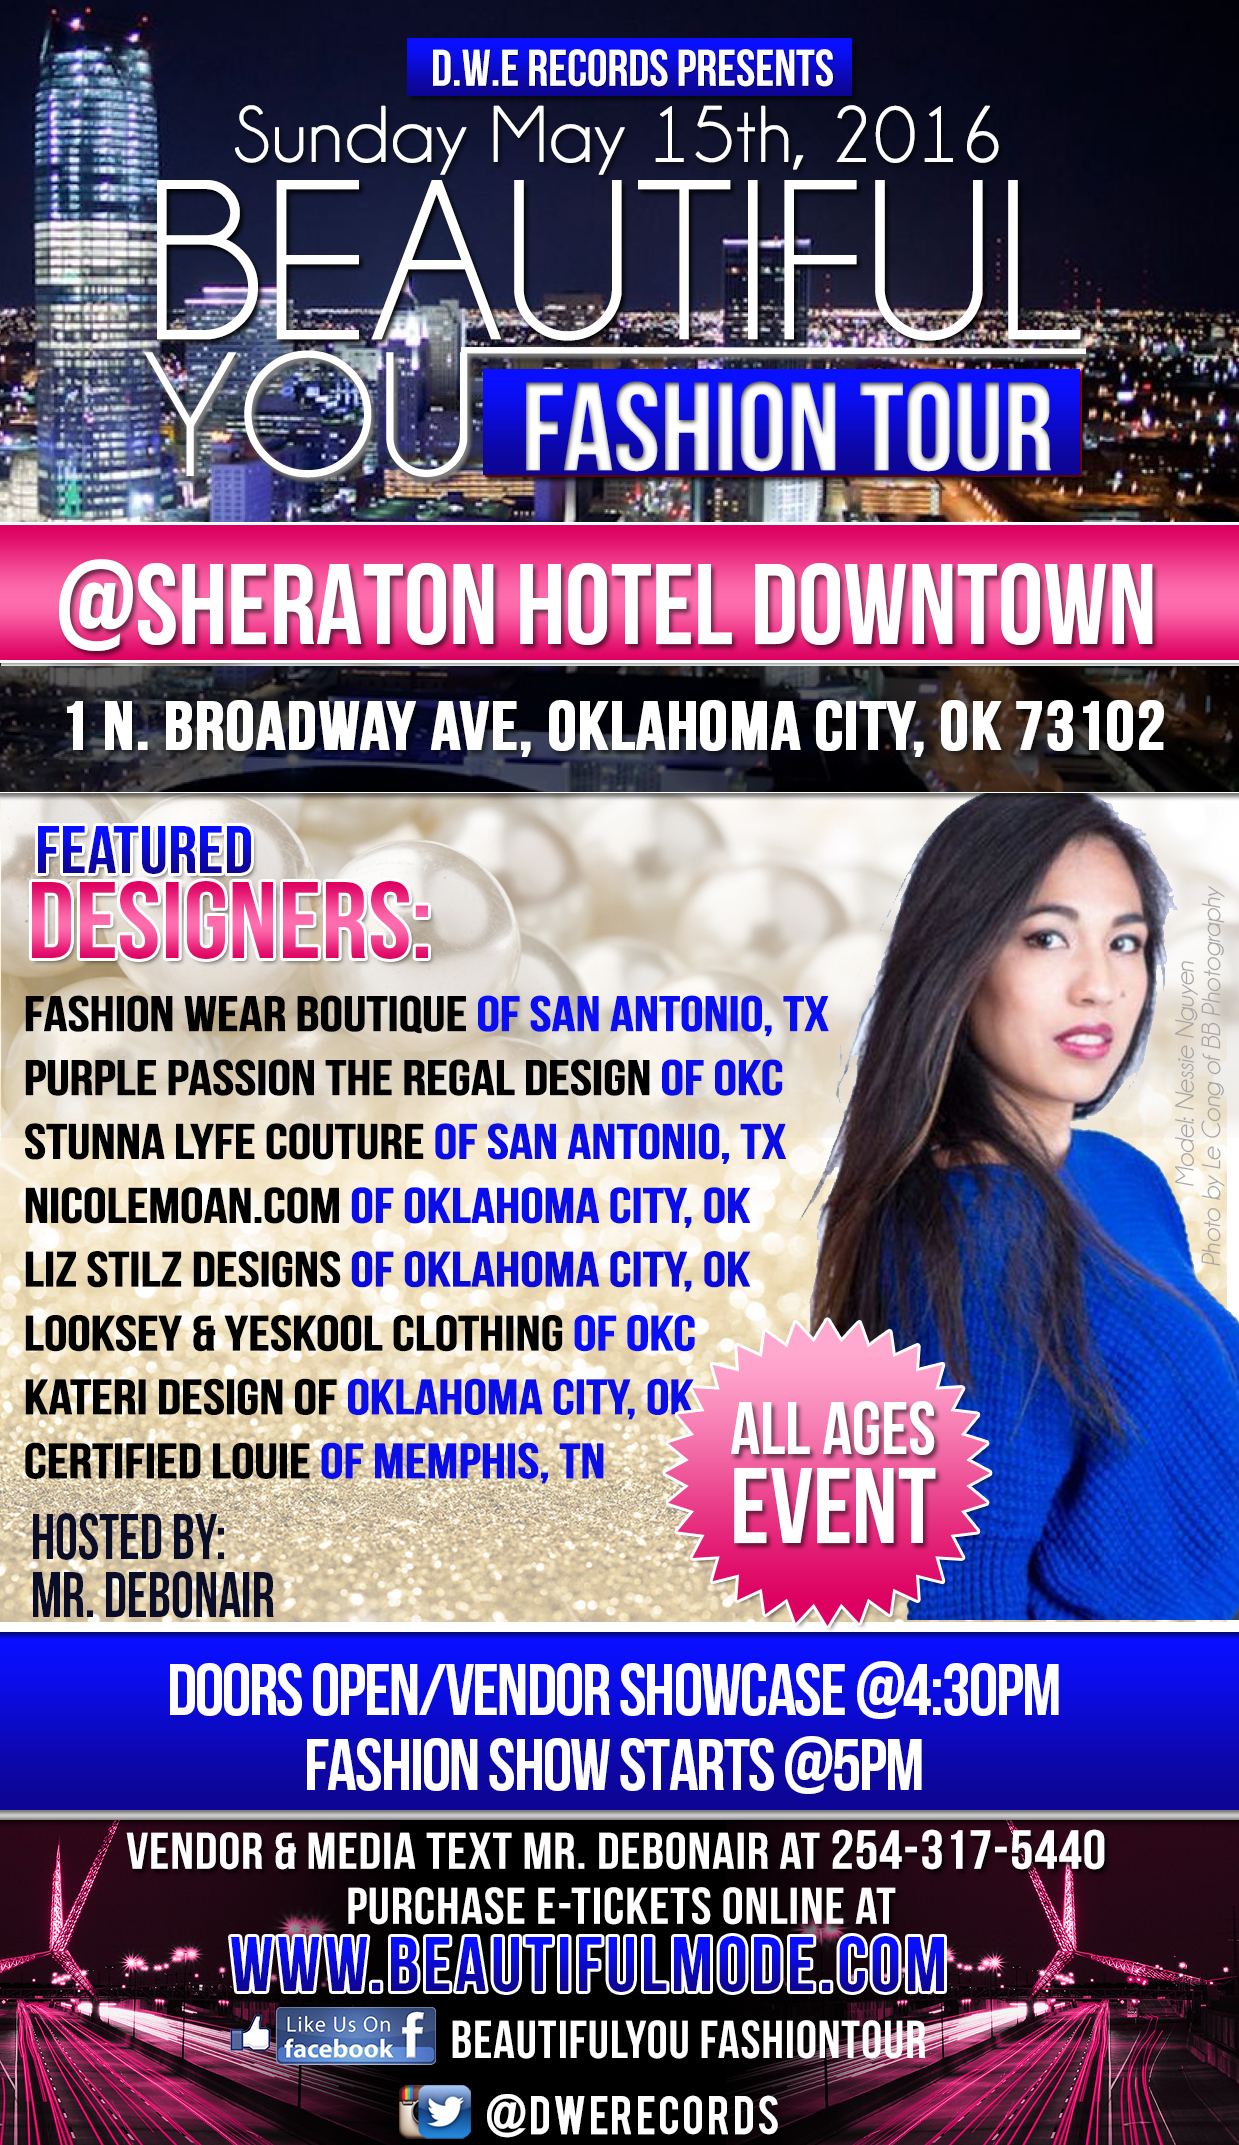 Oklahoma City, OK</a><br> by <a href='/profile/Mr-Debonair-BYFT-Director/'>Mr. Debonair BYFT Director</a>